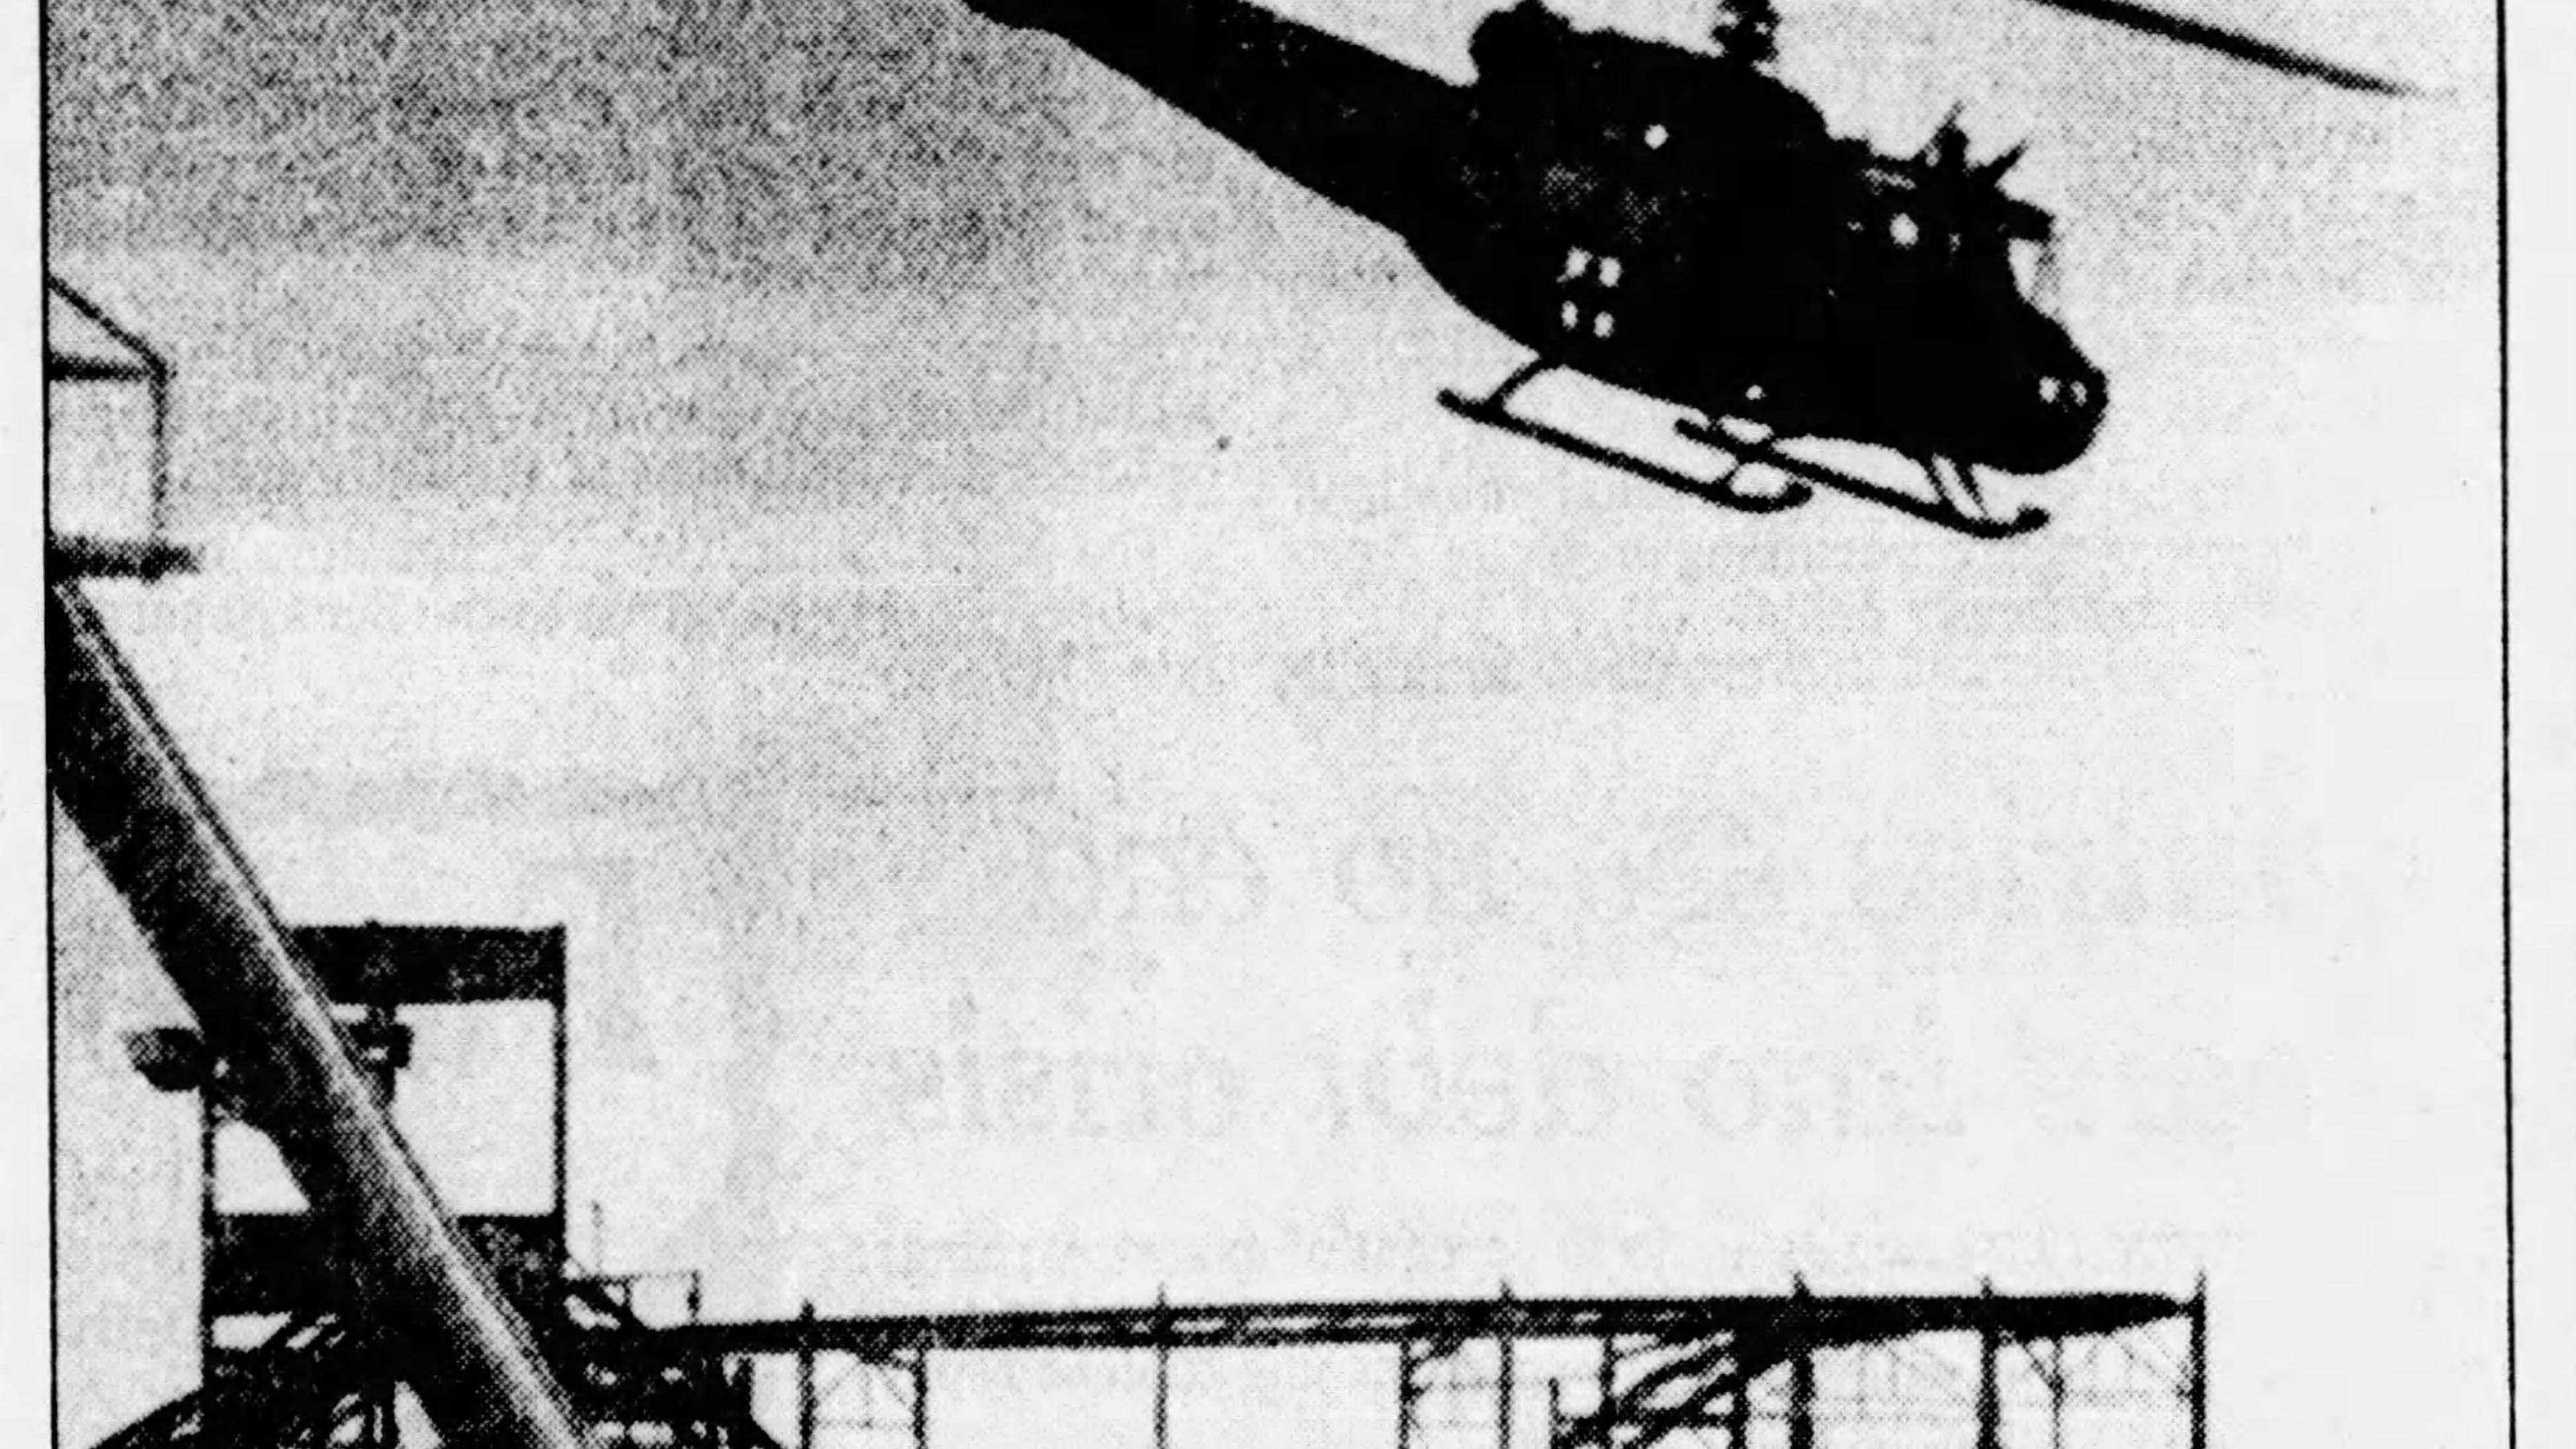 Sept. 2, 1985: An Army helicopter takes off from Magic Landing Amusement Park carrying Frank Guzman, 18, a worker whose left arm was severed by a roller-coaster car.